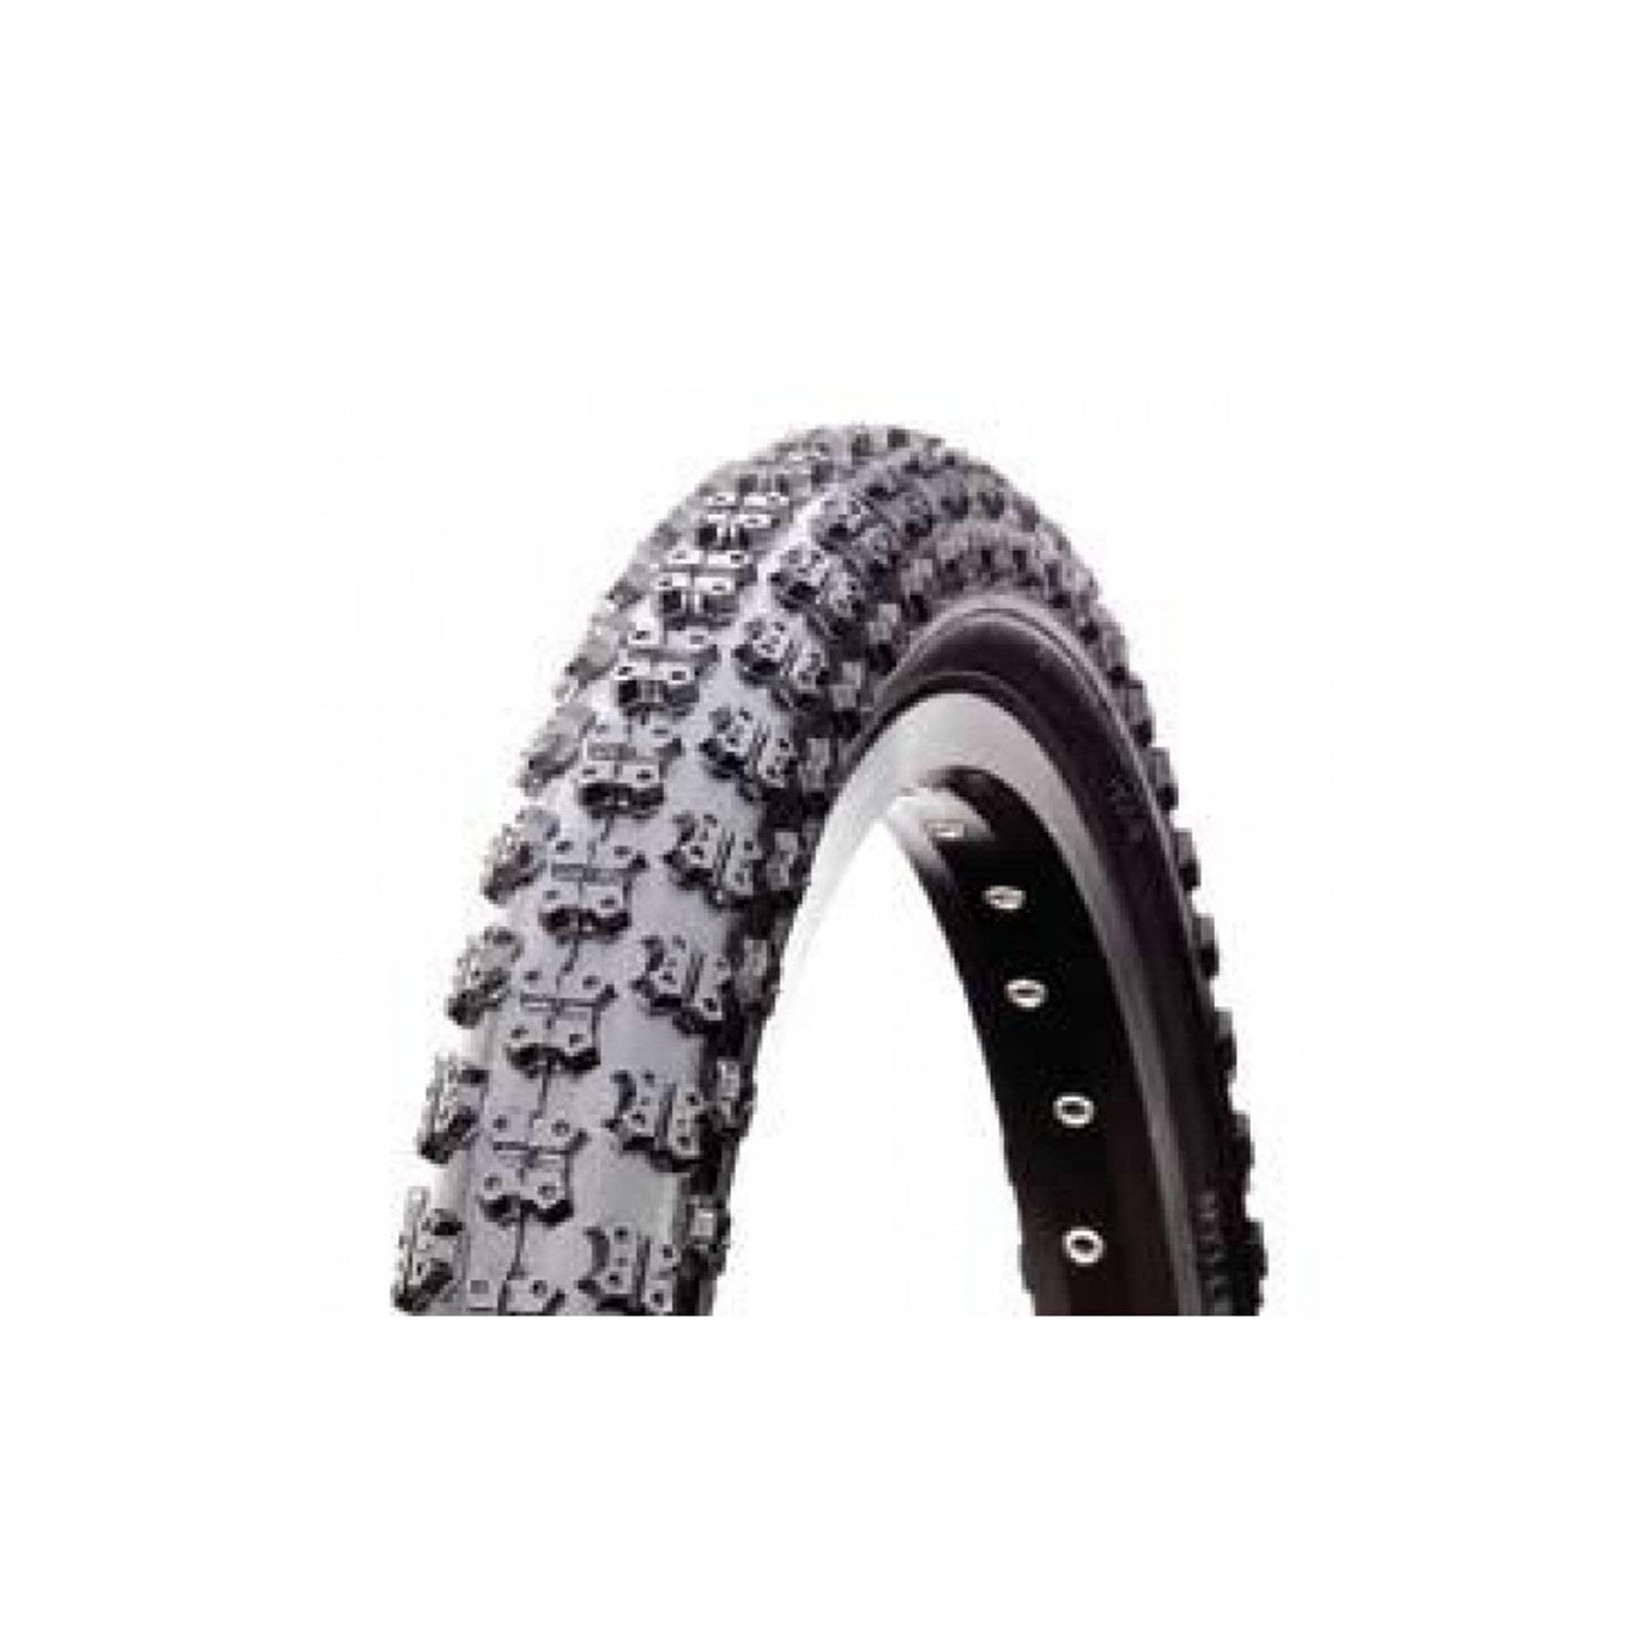 Chaoyang 16 x 2.125 BMX Knobbly Tyre